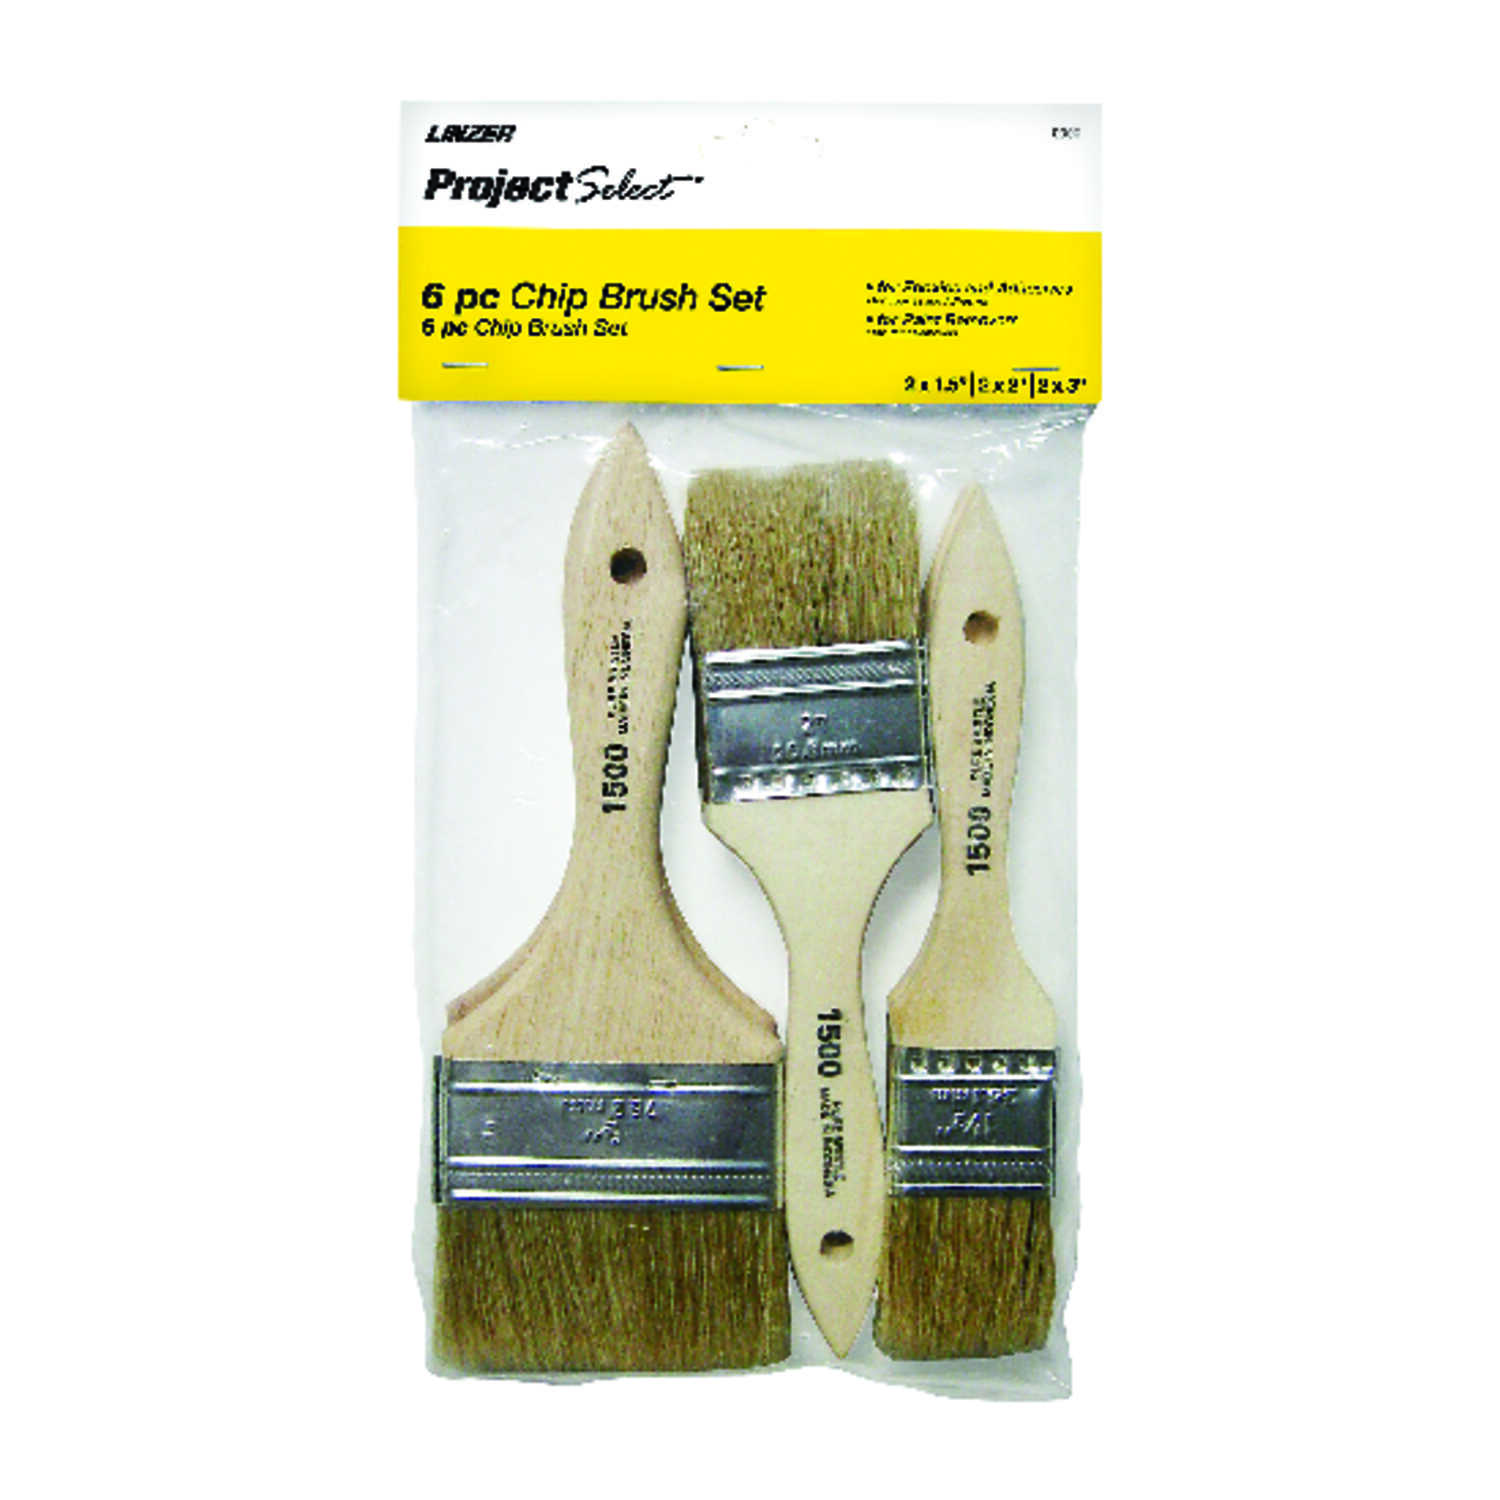 Linzer  1/2, 2, and 3 in. W Project Select  Flat  Paint Brush Set  White China Bristle